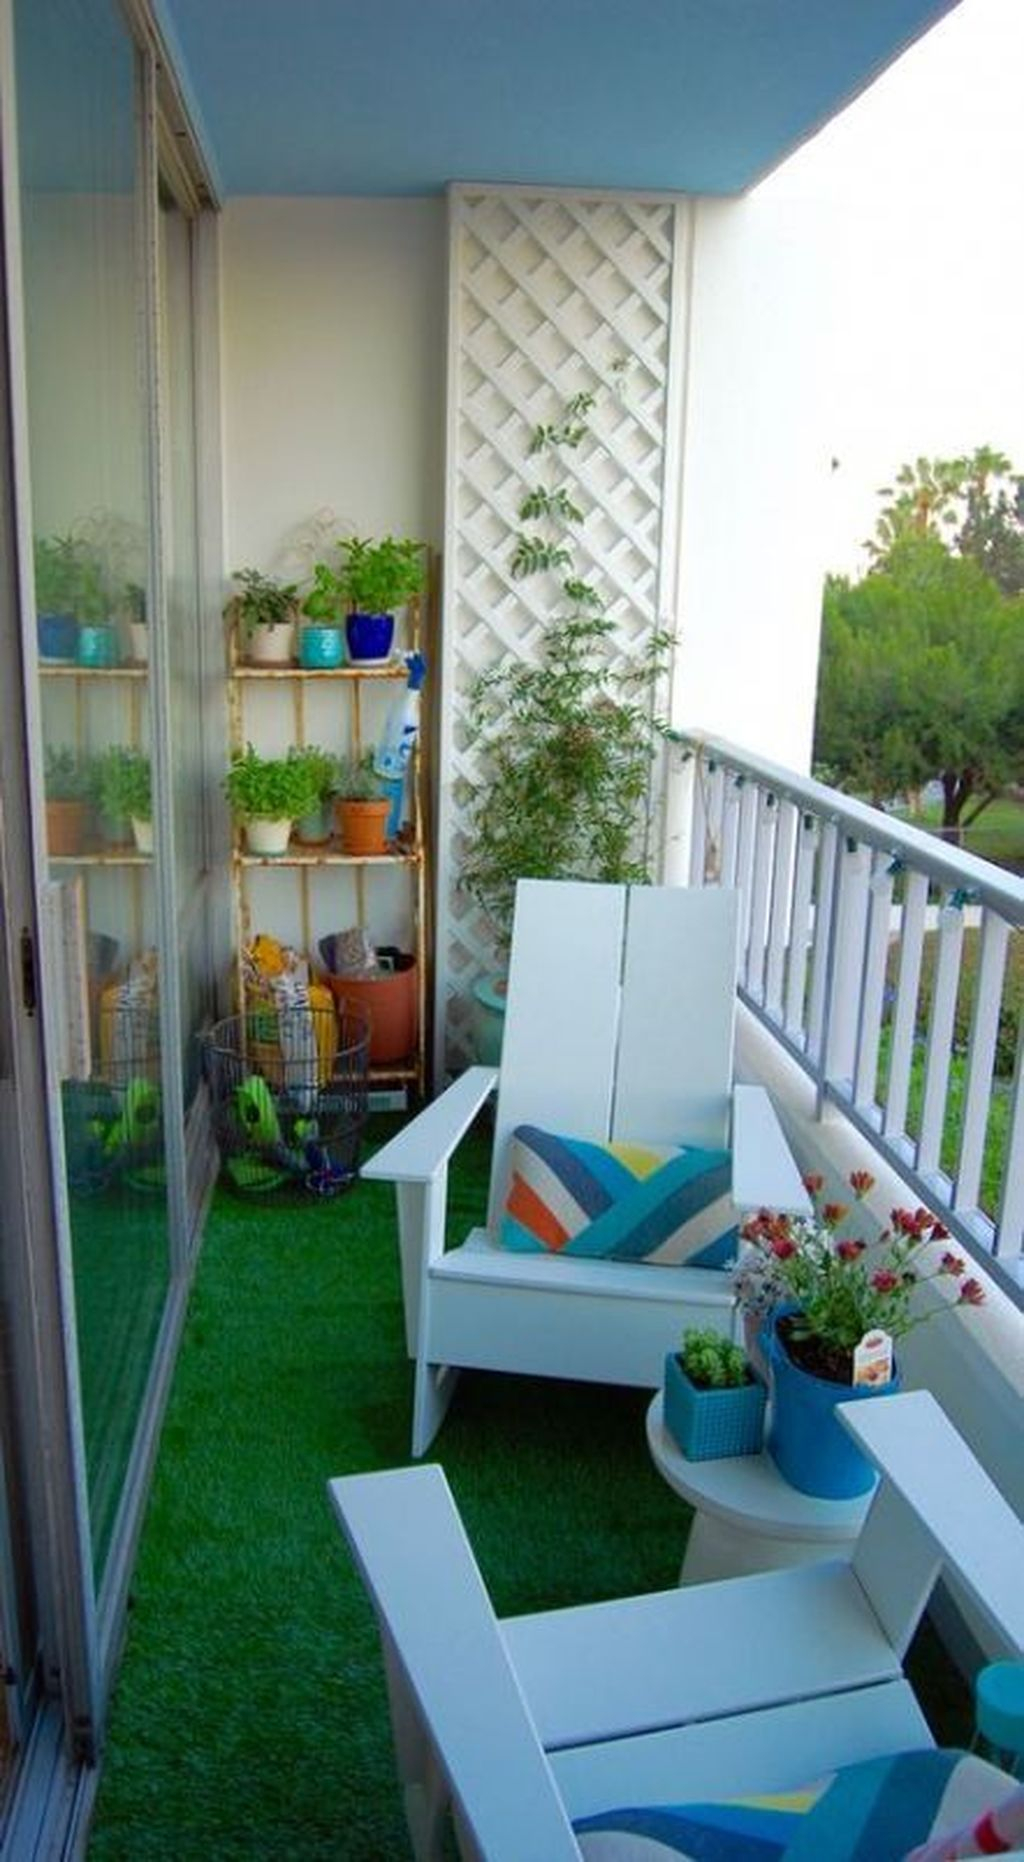 Enchanting Balcony Decoration Ideas For Apartment For A Cleaner Look 08